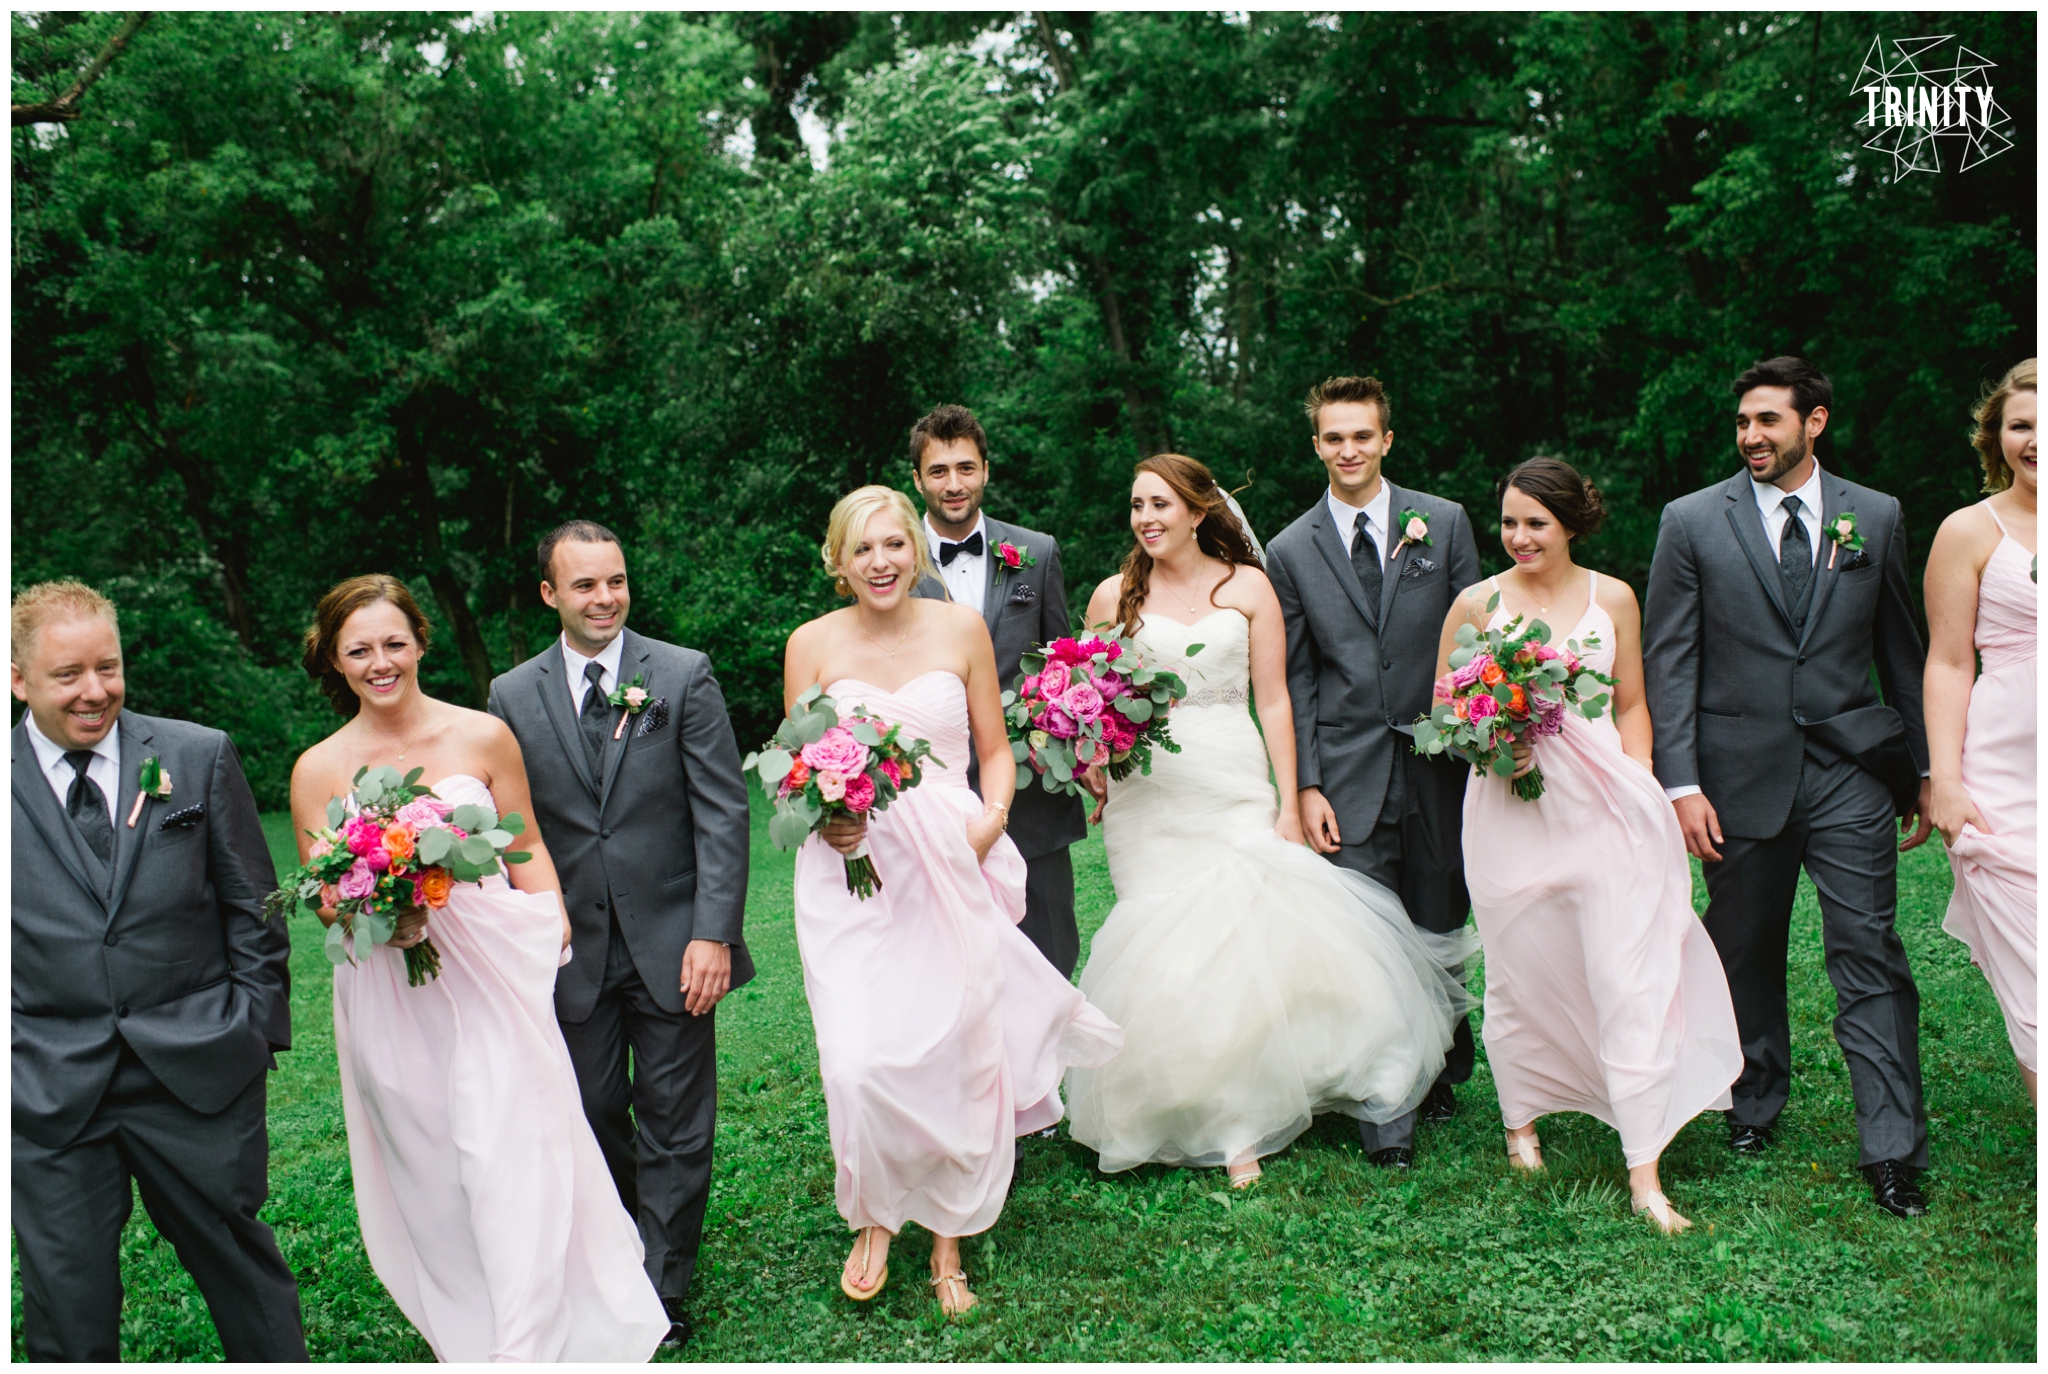 LANG-wedding-WEB-6596_WEBstomp.jpg